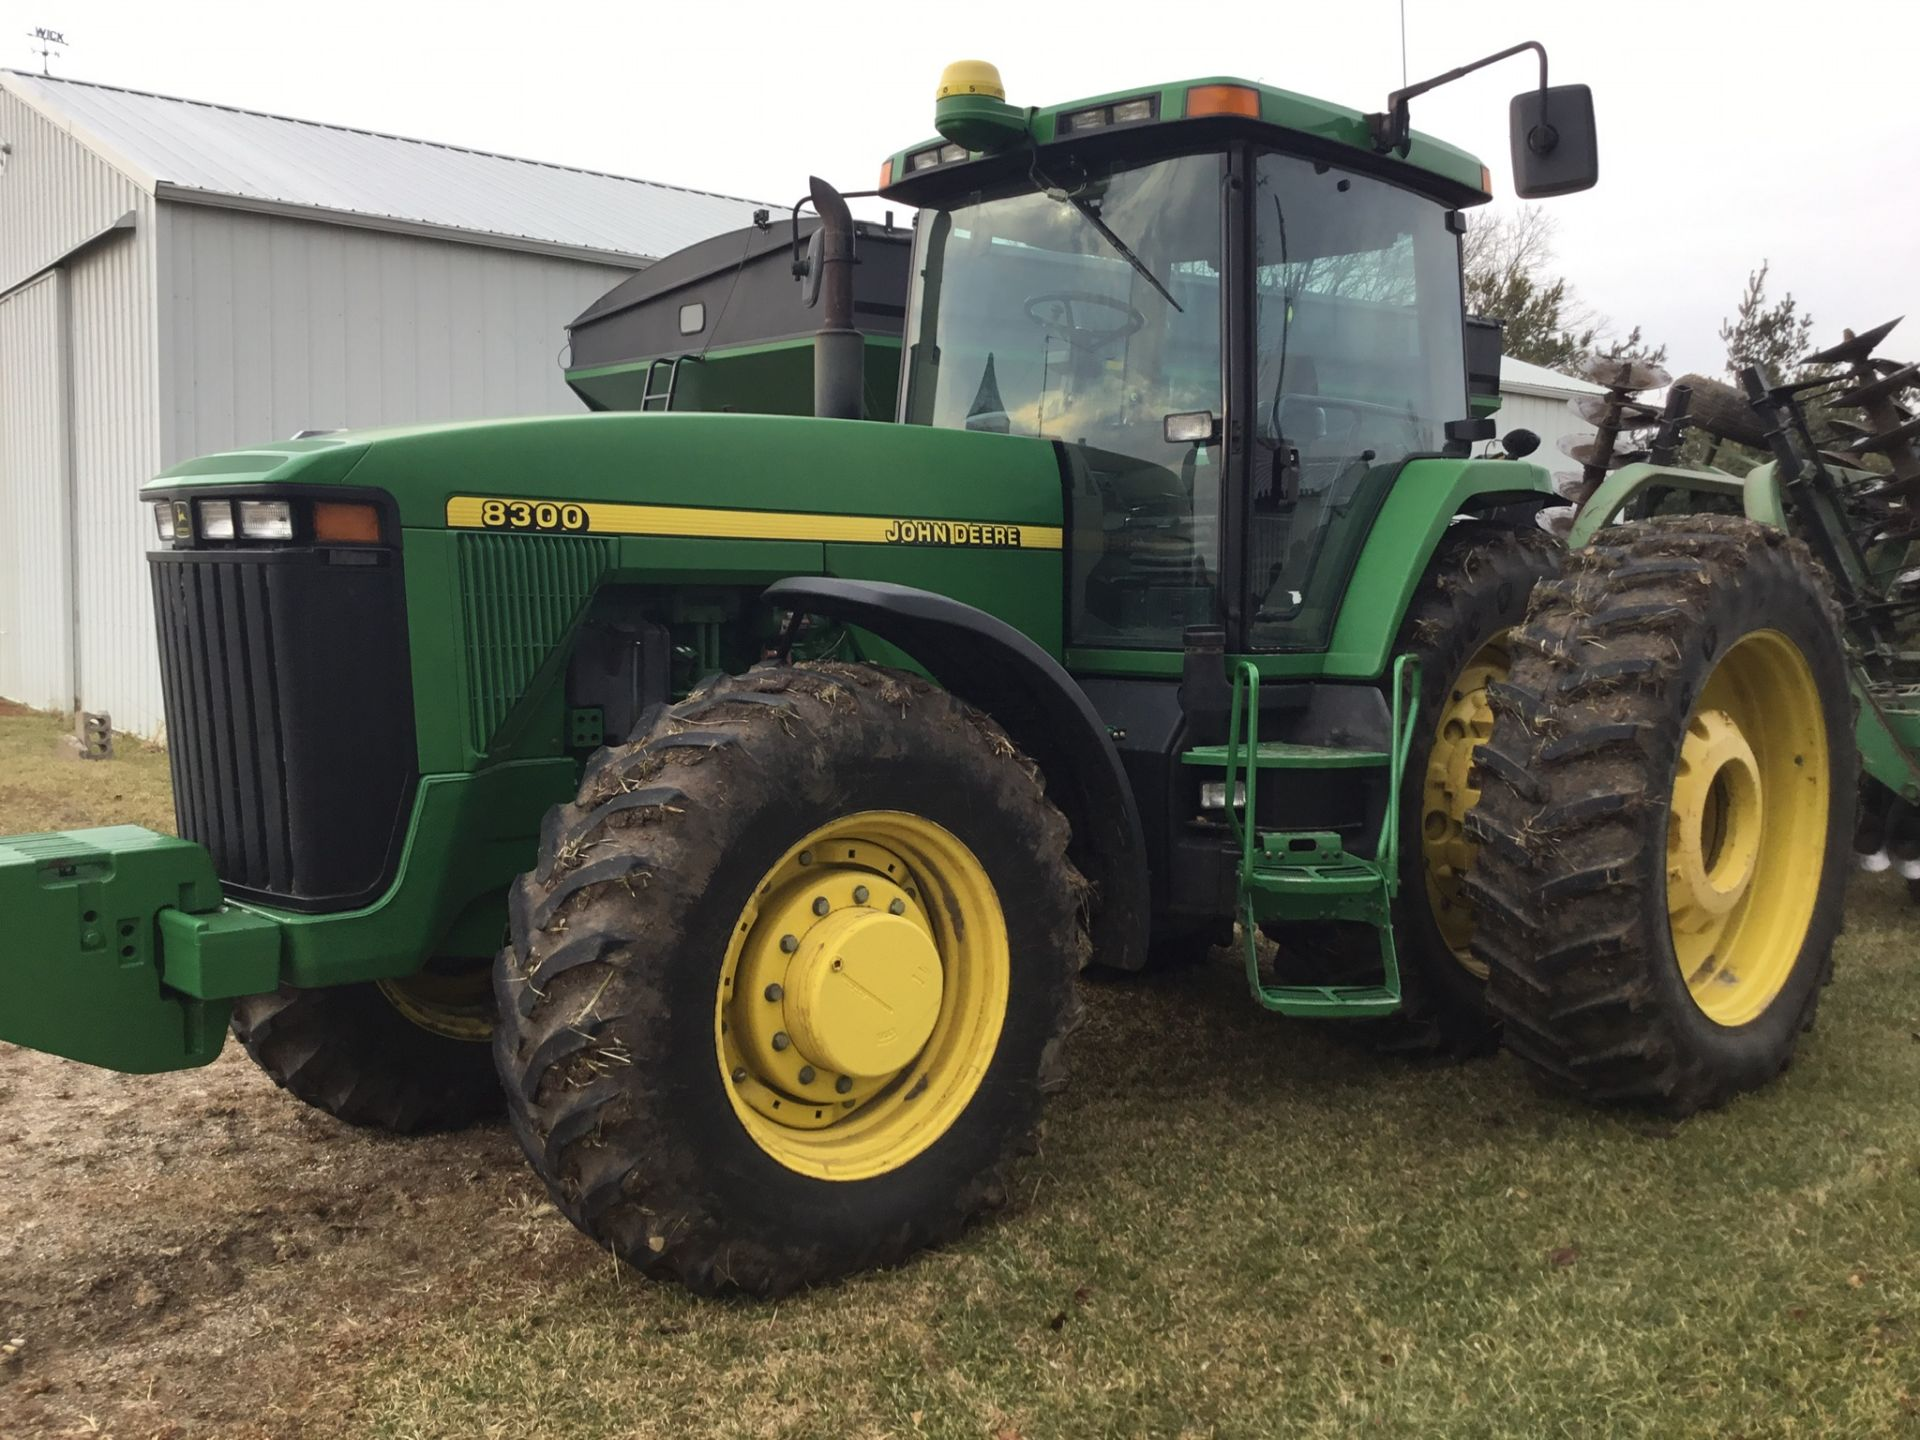 1997 John Deere 8300 MFWD, Power Shift, 3 Hydraulic Remotes, 3 Pt., Quick Hitch, PTO, Green Star - Image 20 of 25